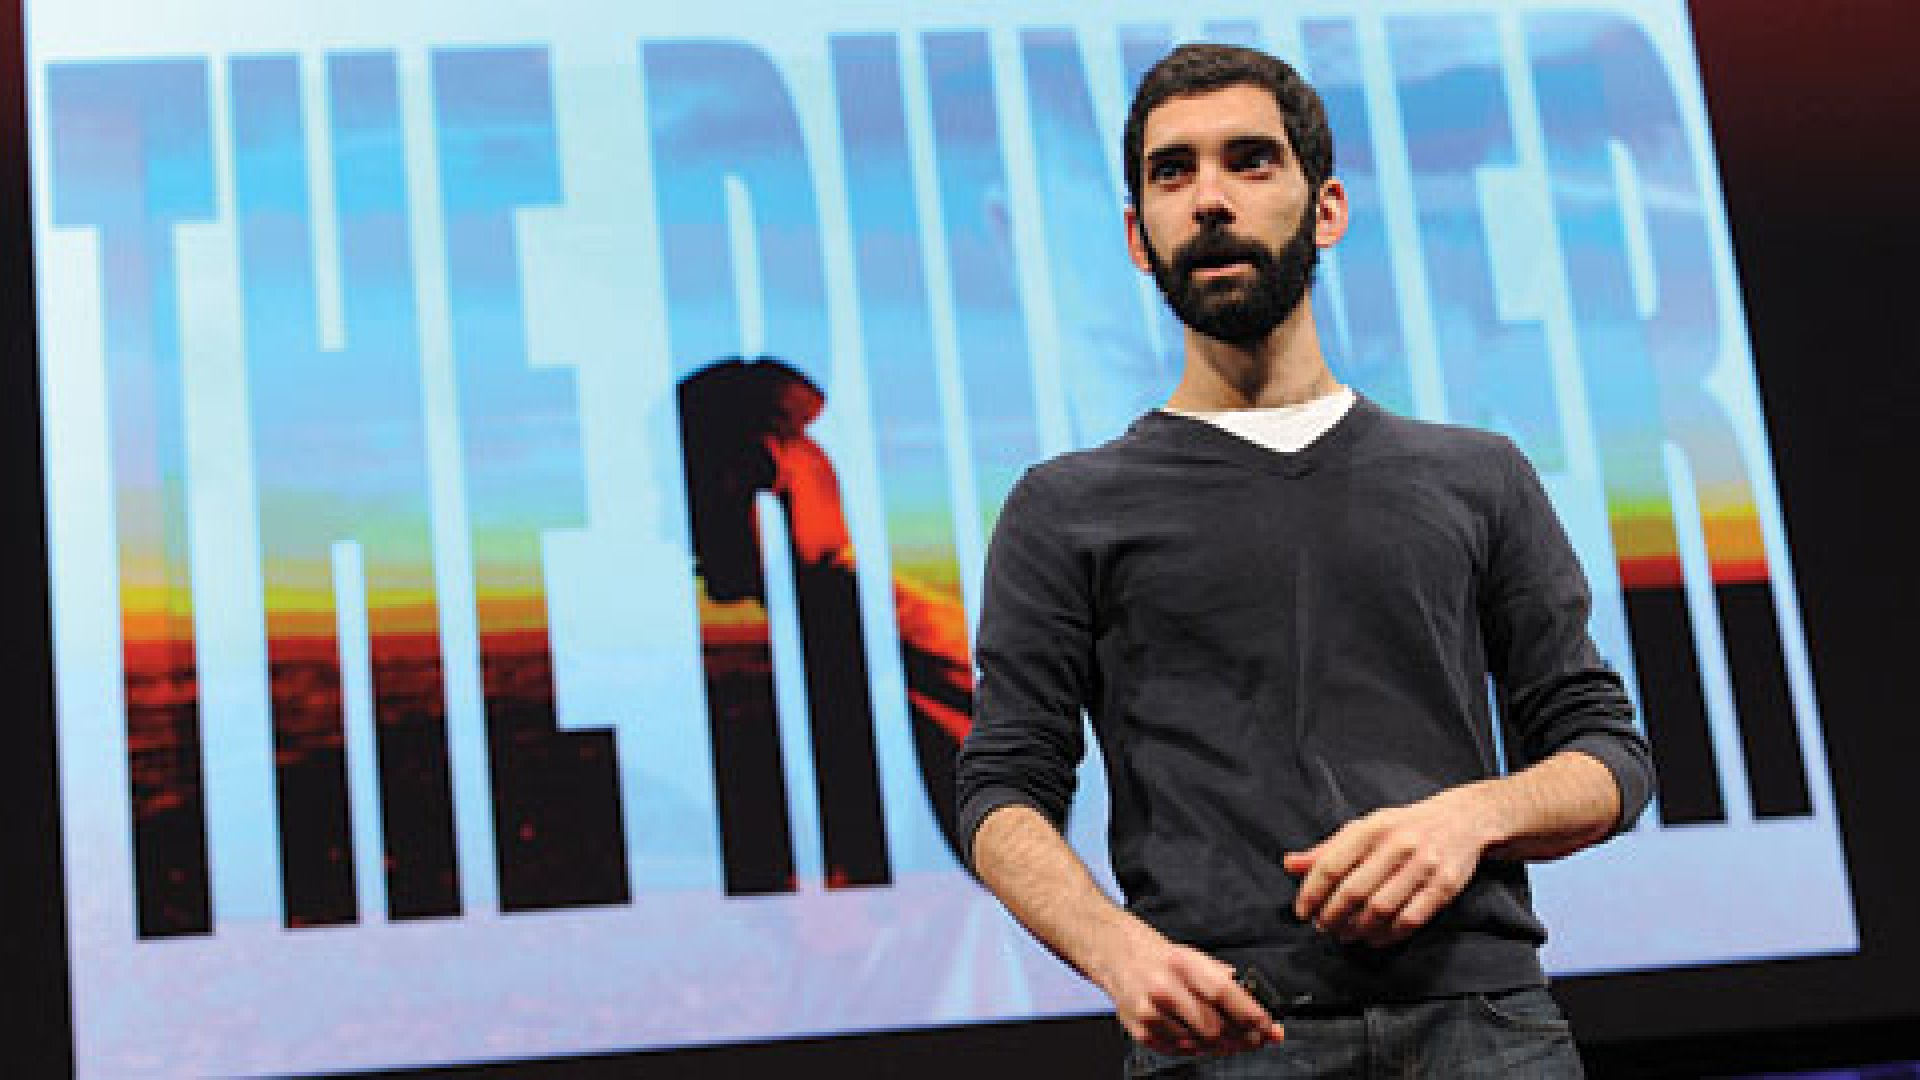 Senior fellow Saeed Taji Farouky is an award-winning documentary director and is among the many speakers at the 2011 TED conference.